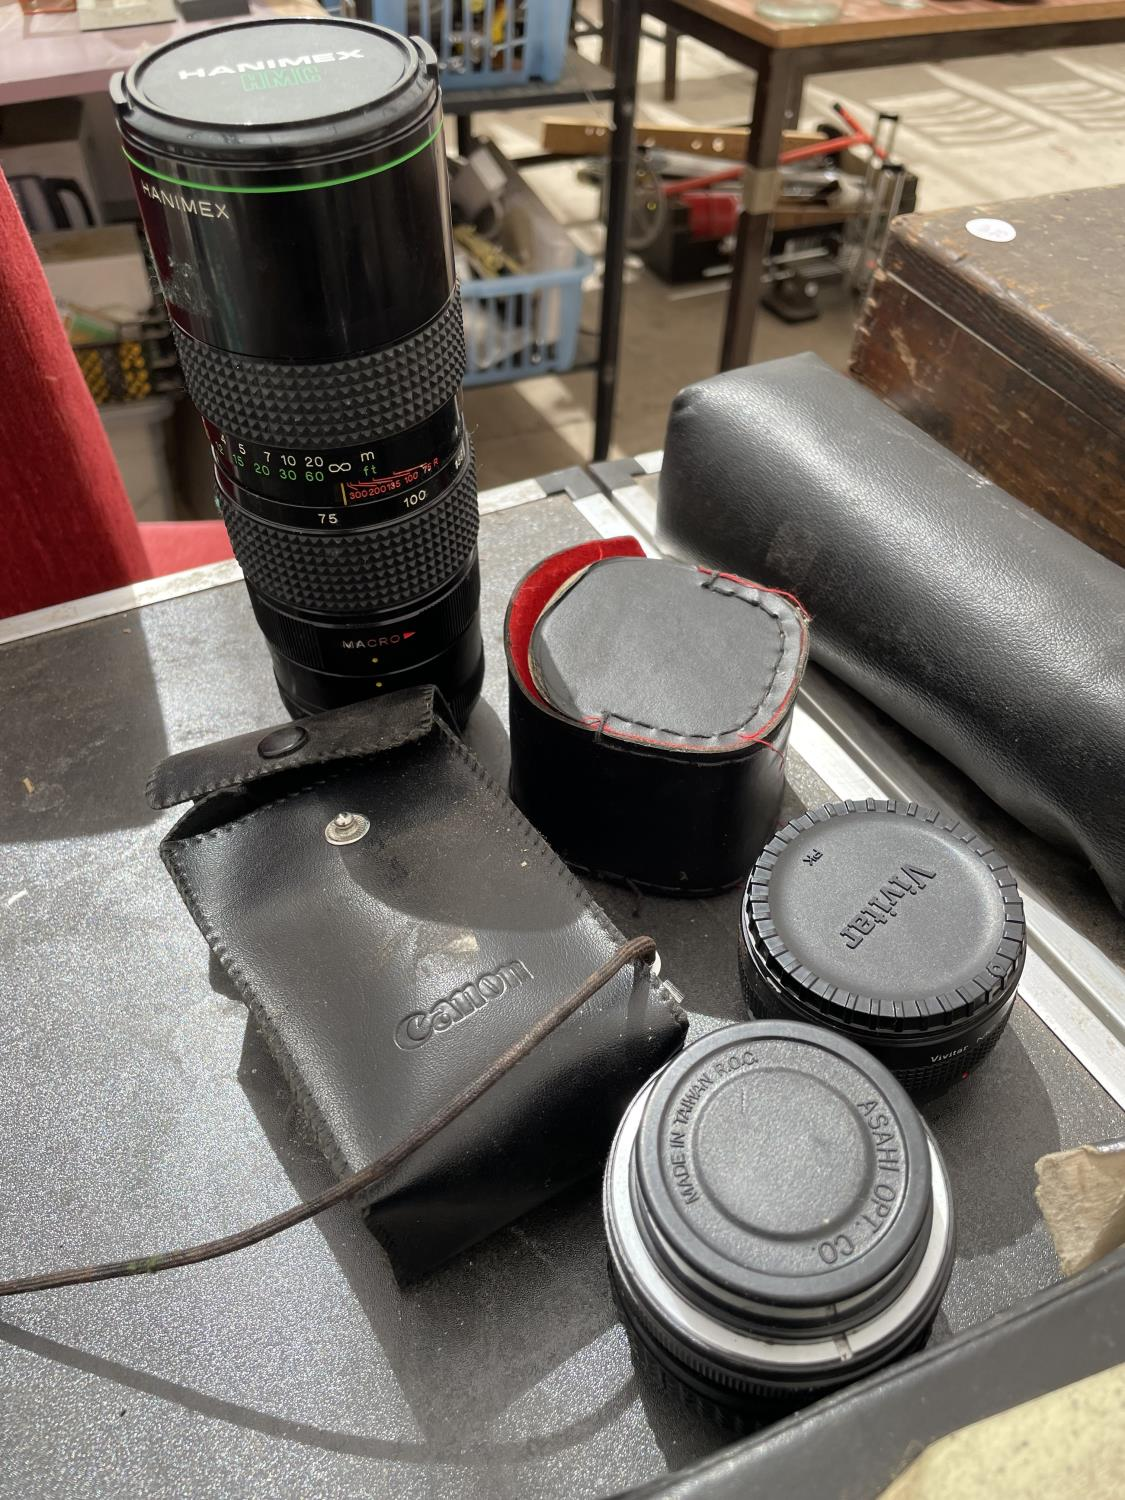 AN ASSORTMENT OF CAMERA EQUIPMENT TO INCLUDE HANIMEX AUTOZOOM LENS, OLYMPUS C10 CAMERA AND VIVITAR - Image 3 of 4